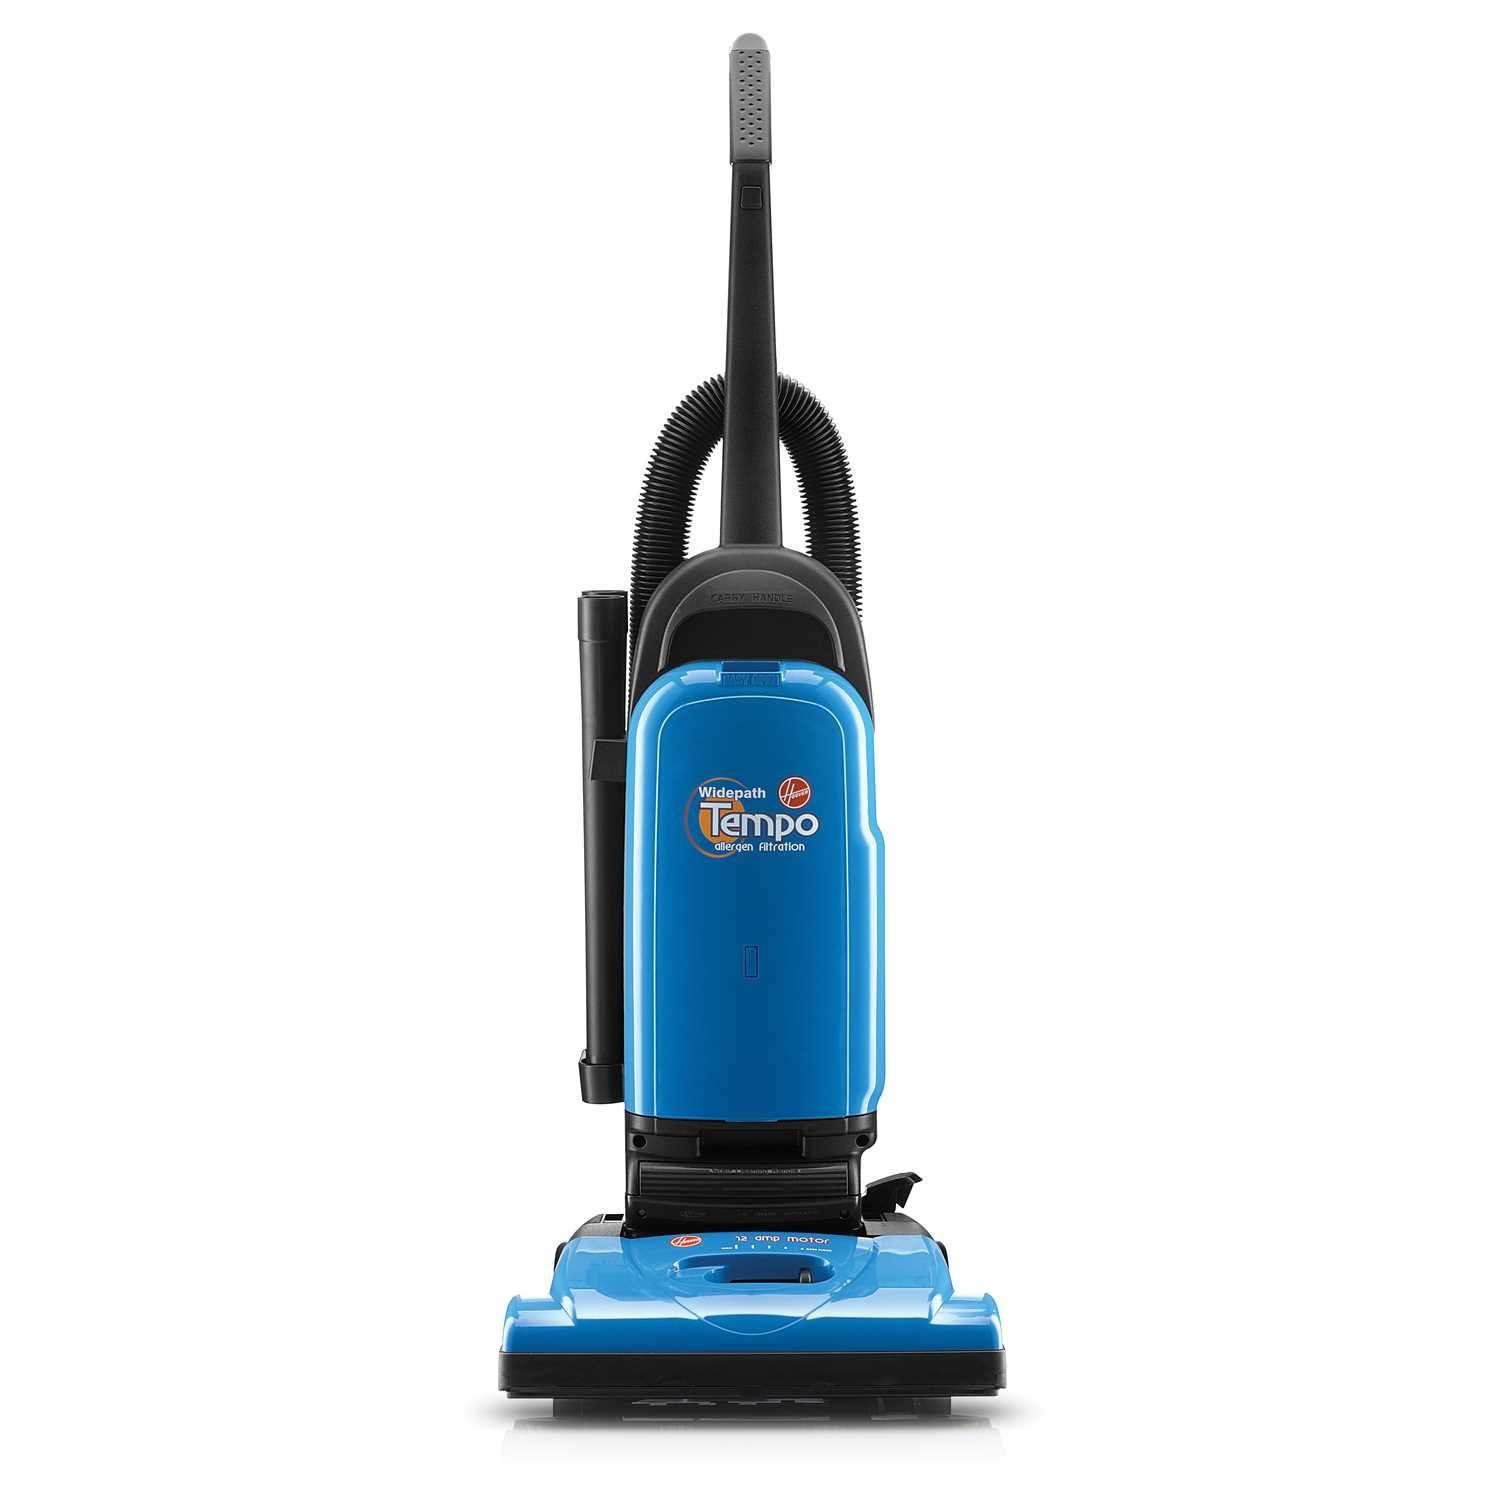 manual for widepath tempo hoover vacuum cleaner